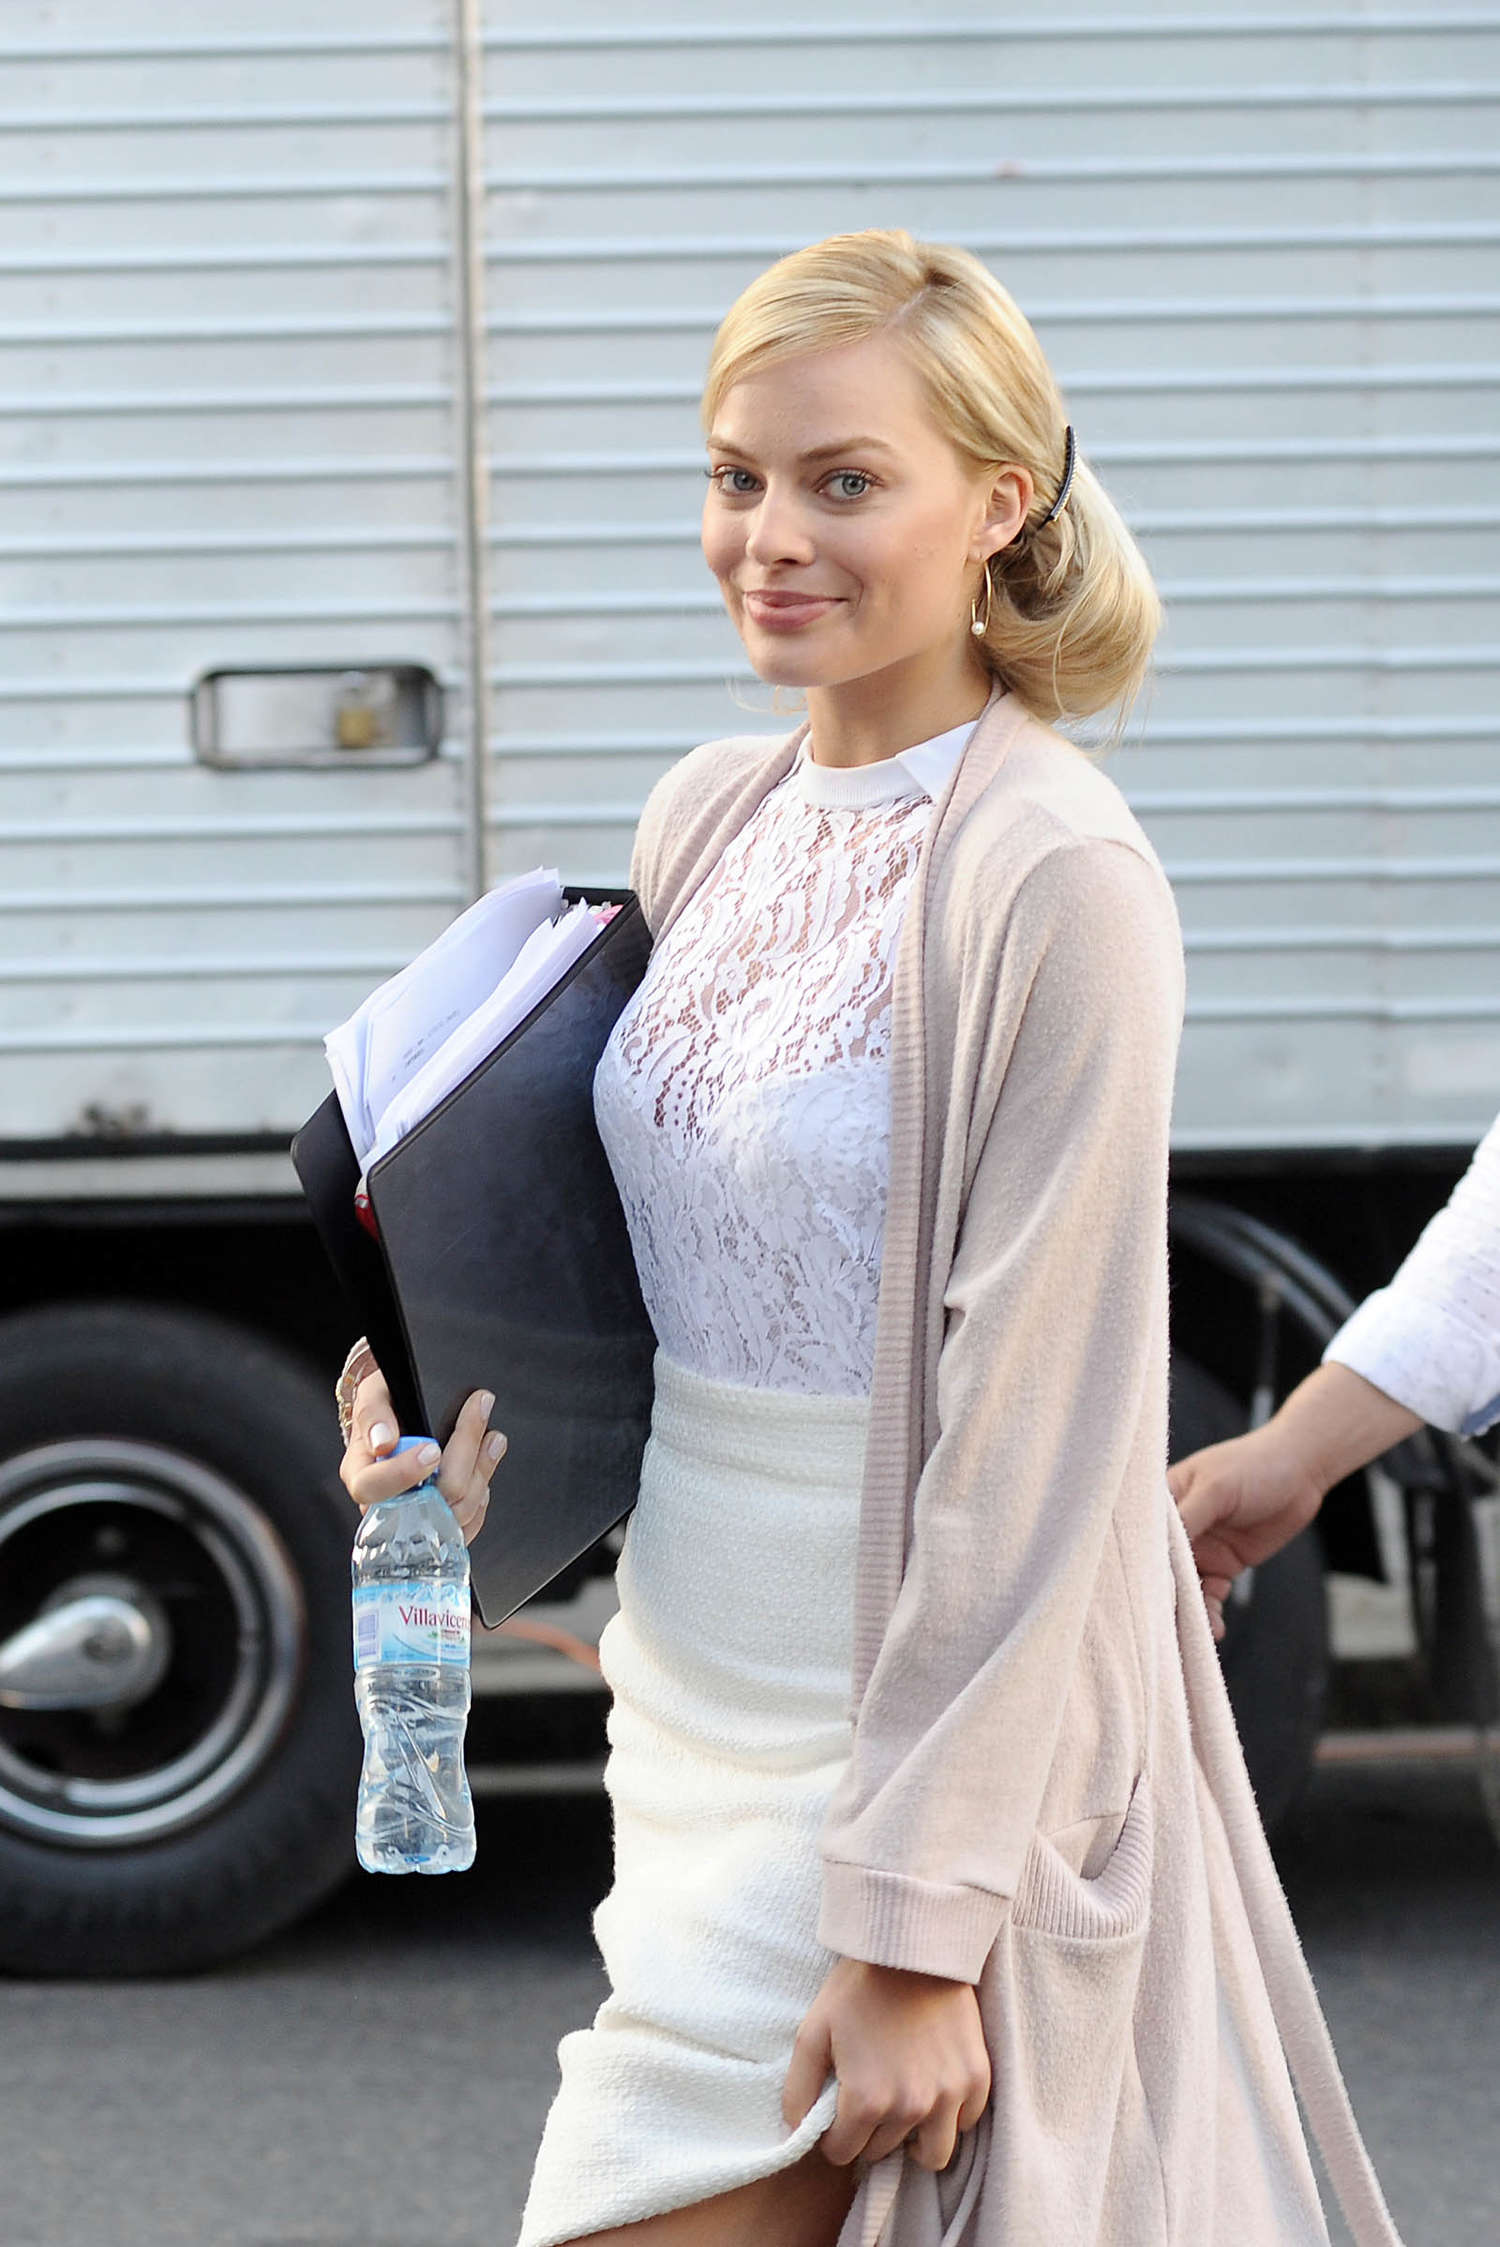 margot robbie � filming �focus� in argentina � gotceleb